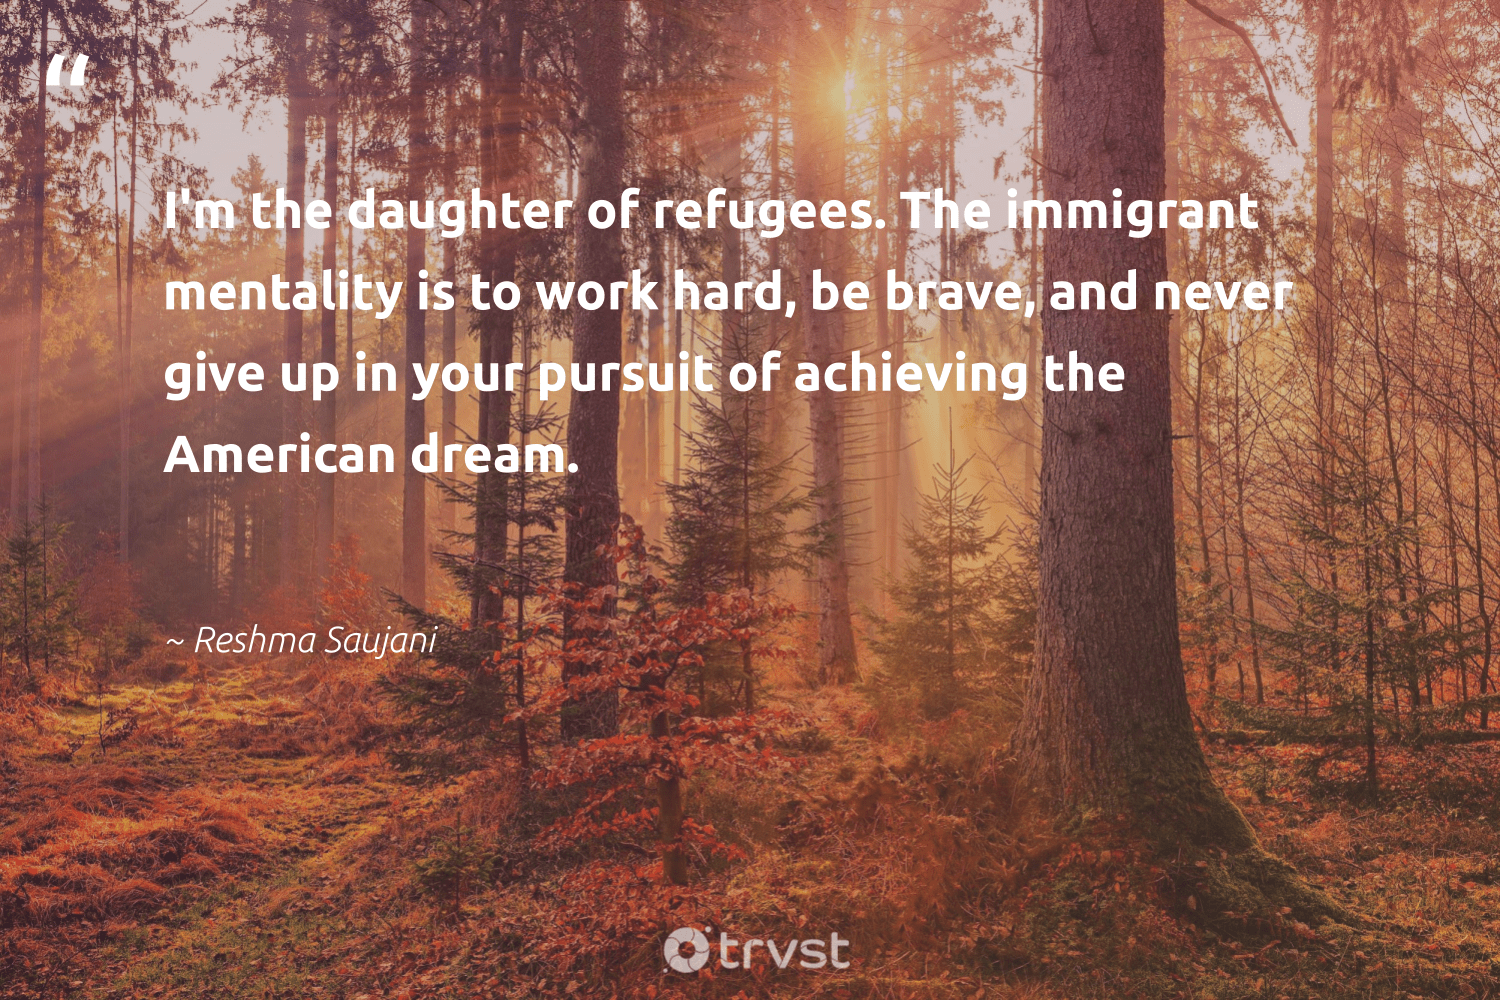 """""""I'm the daughter of refugees. The immigrant mentality is to work hard, be brave, and never give up in your pursuit of achieving the American dream.""""  - Reshma Saujani #trvst #quotes #refugees #nevergiveup #refugee #sustainablefutures #equalopportunity #socialimpact #refugeeswelcome #inclusion #makeadifference #dotherightthing"""